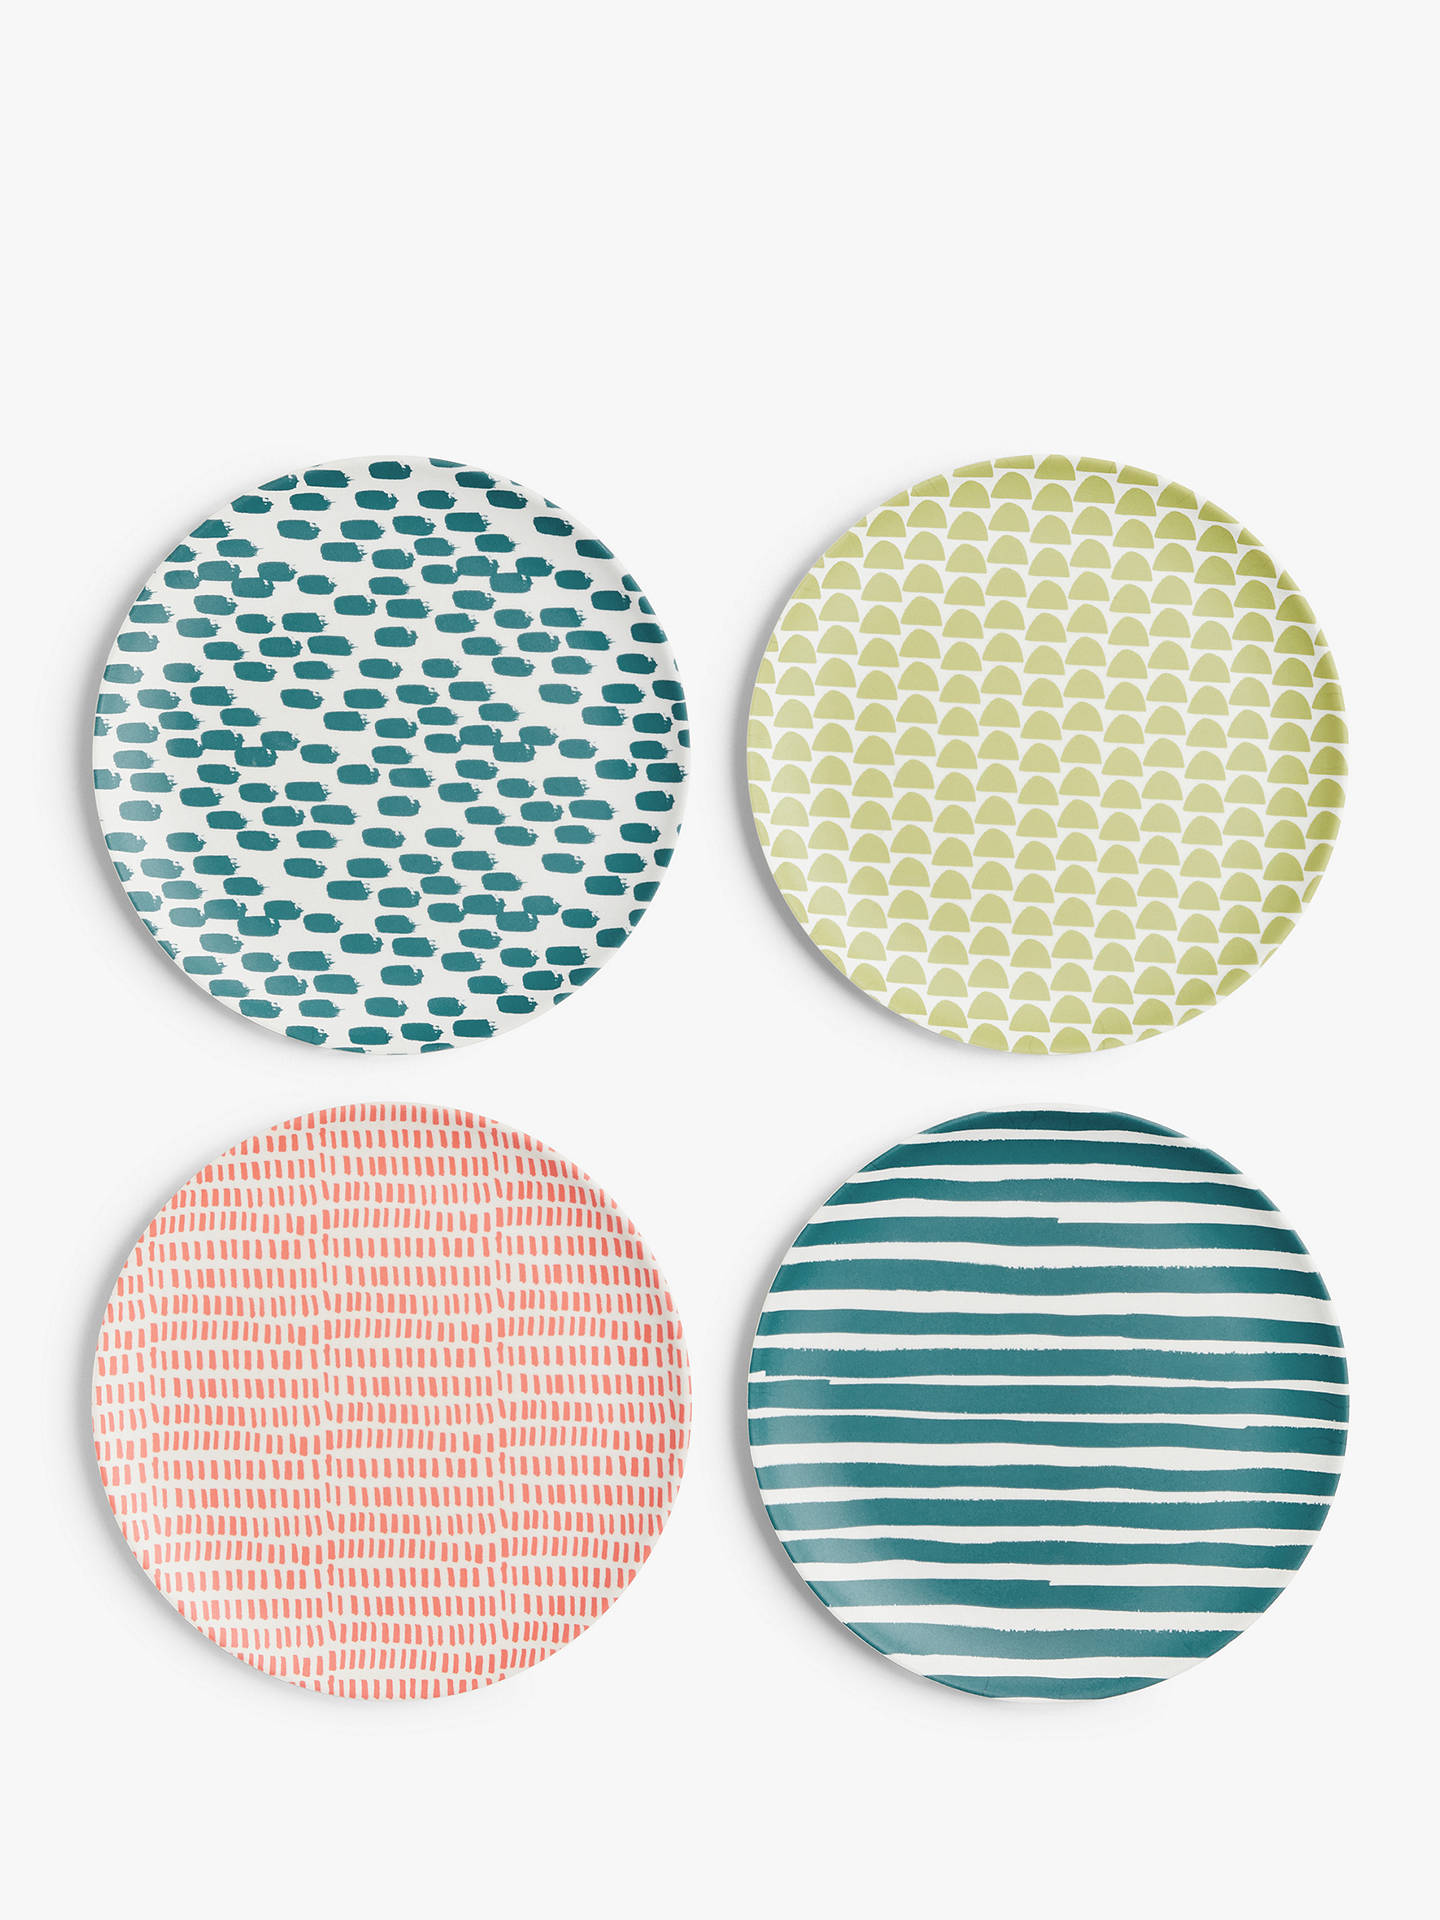 Buy John Lewis & Partners Bamboo Patterned Side Plates, Set of 4, 20cm, Assorted Online at johnlewis.com